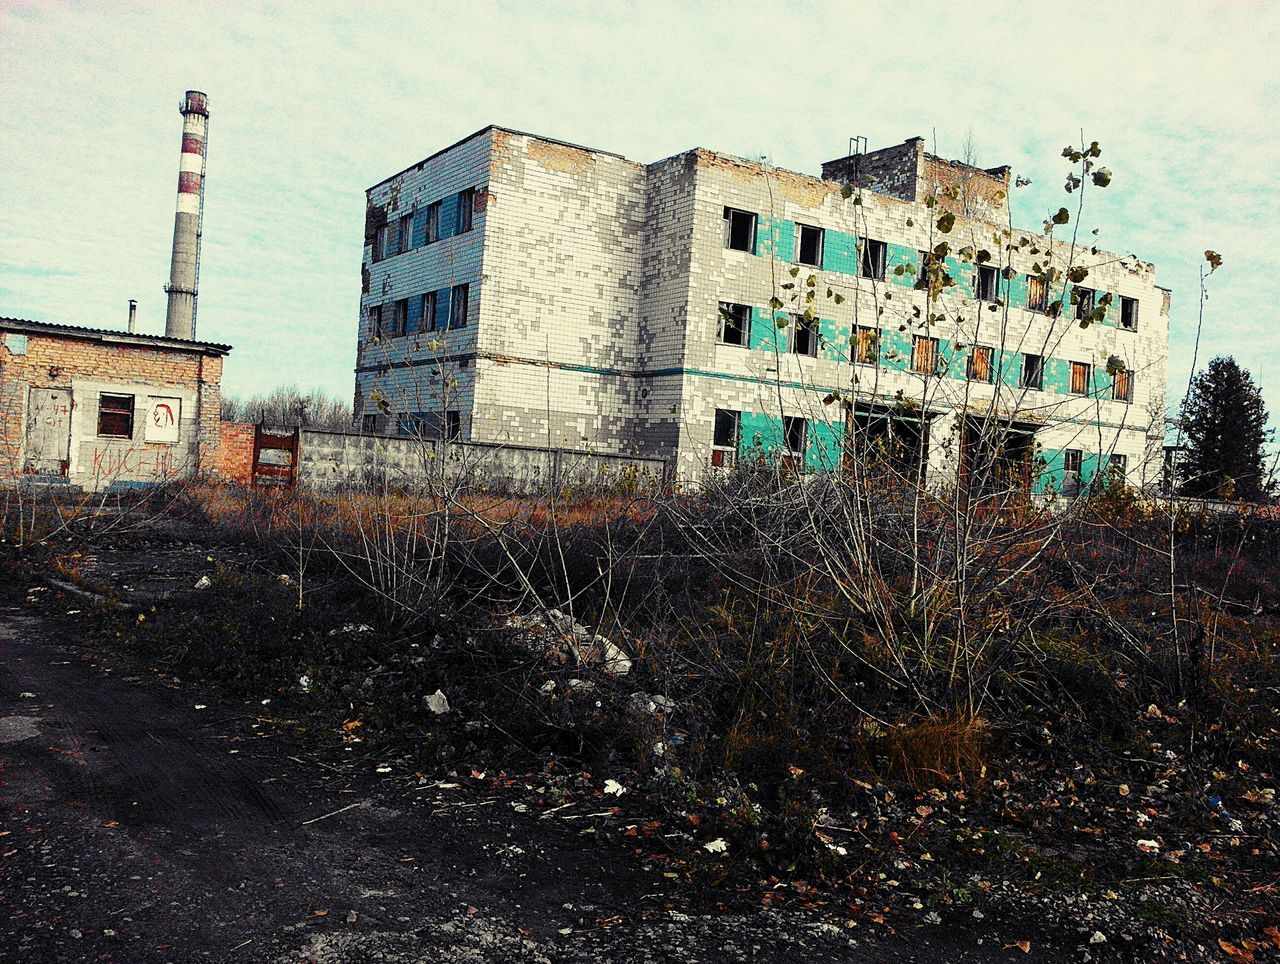 architecture, building exterior, built structure, abandoned, damaged, house, sky, no people, outdoors, day, plant, desolate, tree, grass